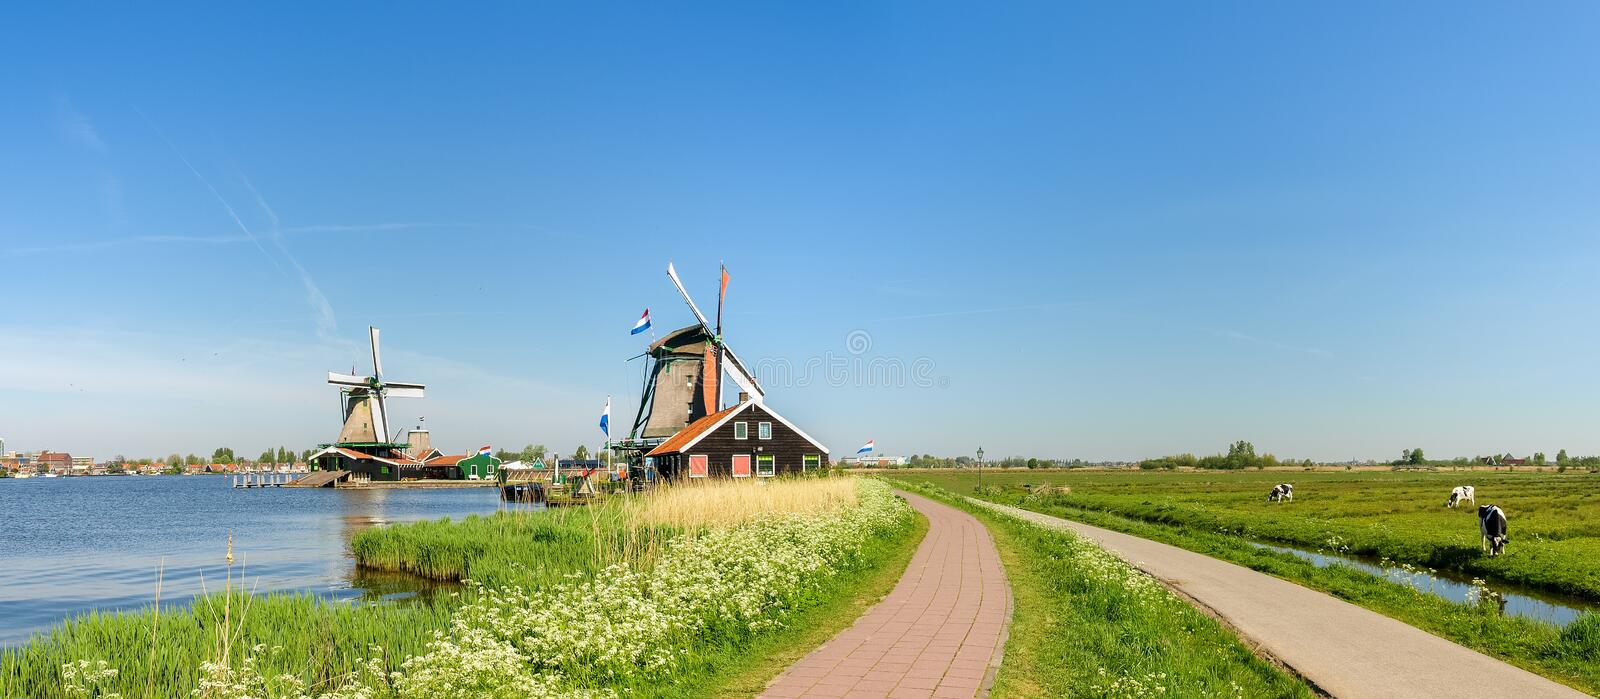 Windmills in ethnographic open-air museum Zaanse Schans, Netherlands. Two windmills - oil mill and sawmill by the lake in the ethnographic open-air museum Zaanse royalty free stock images